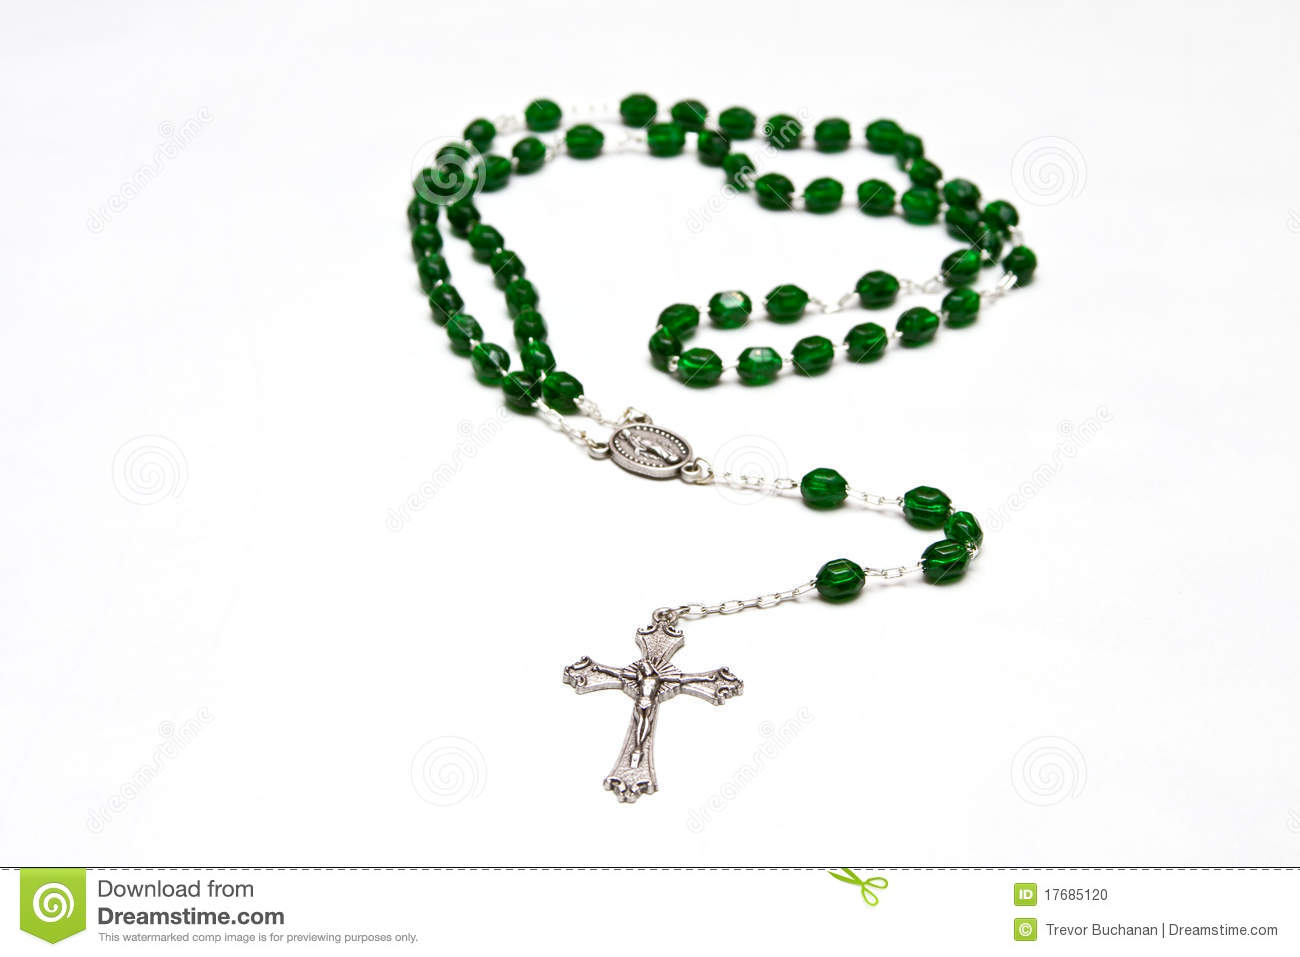 Catholic Rosary Beads Royalty Free Stock Images - Image: 17685209